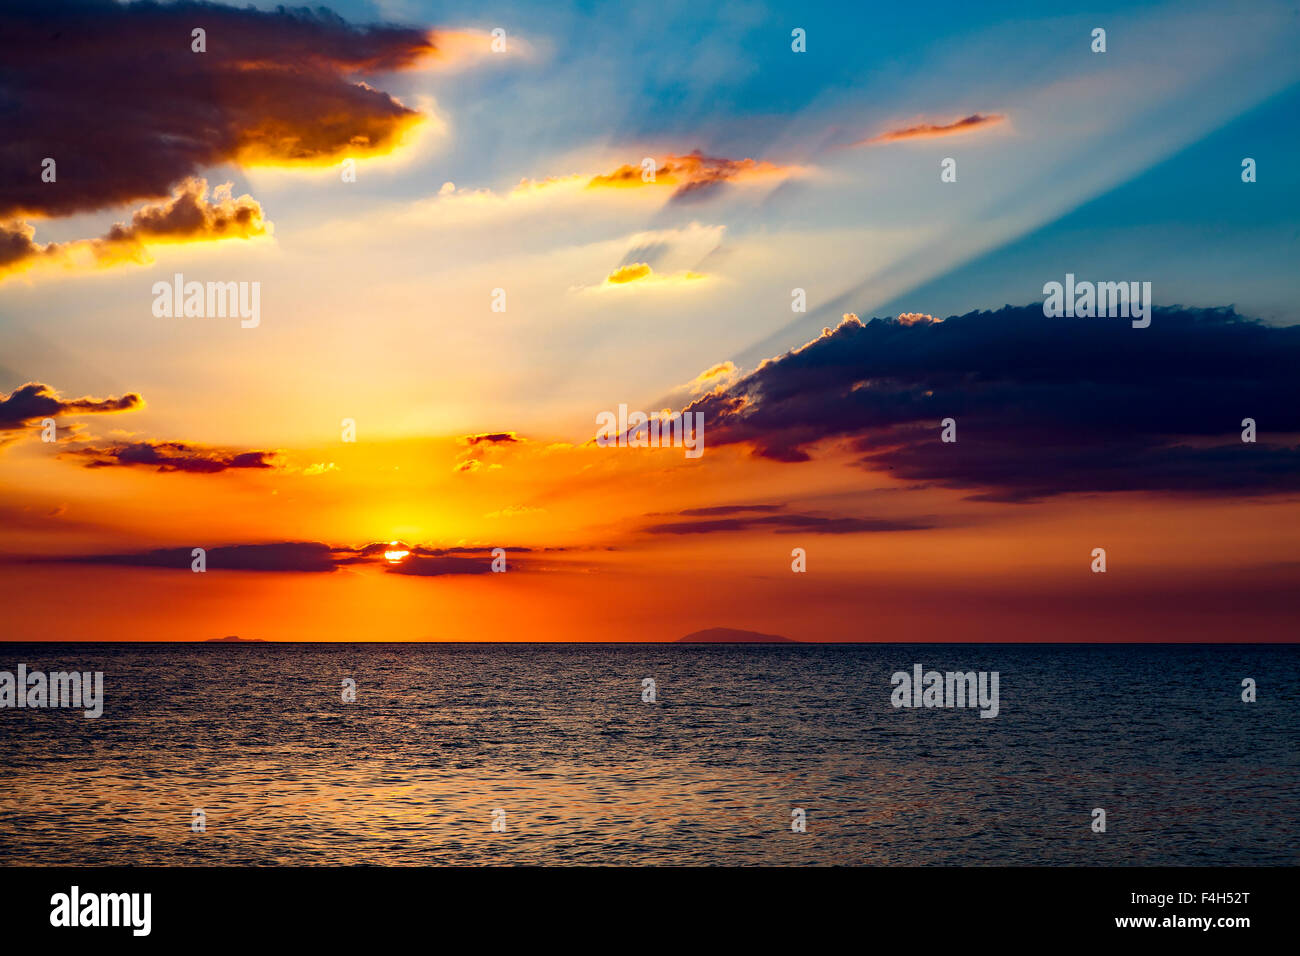 Spectacular sunset in the Philippines. - Stock Image